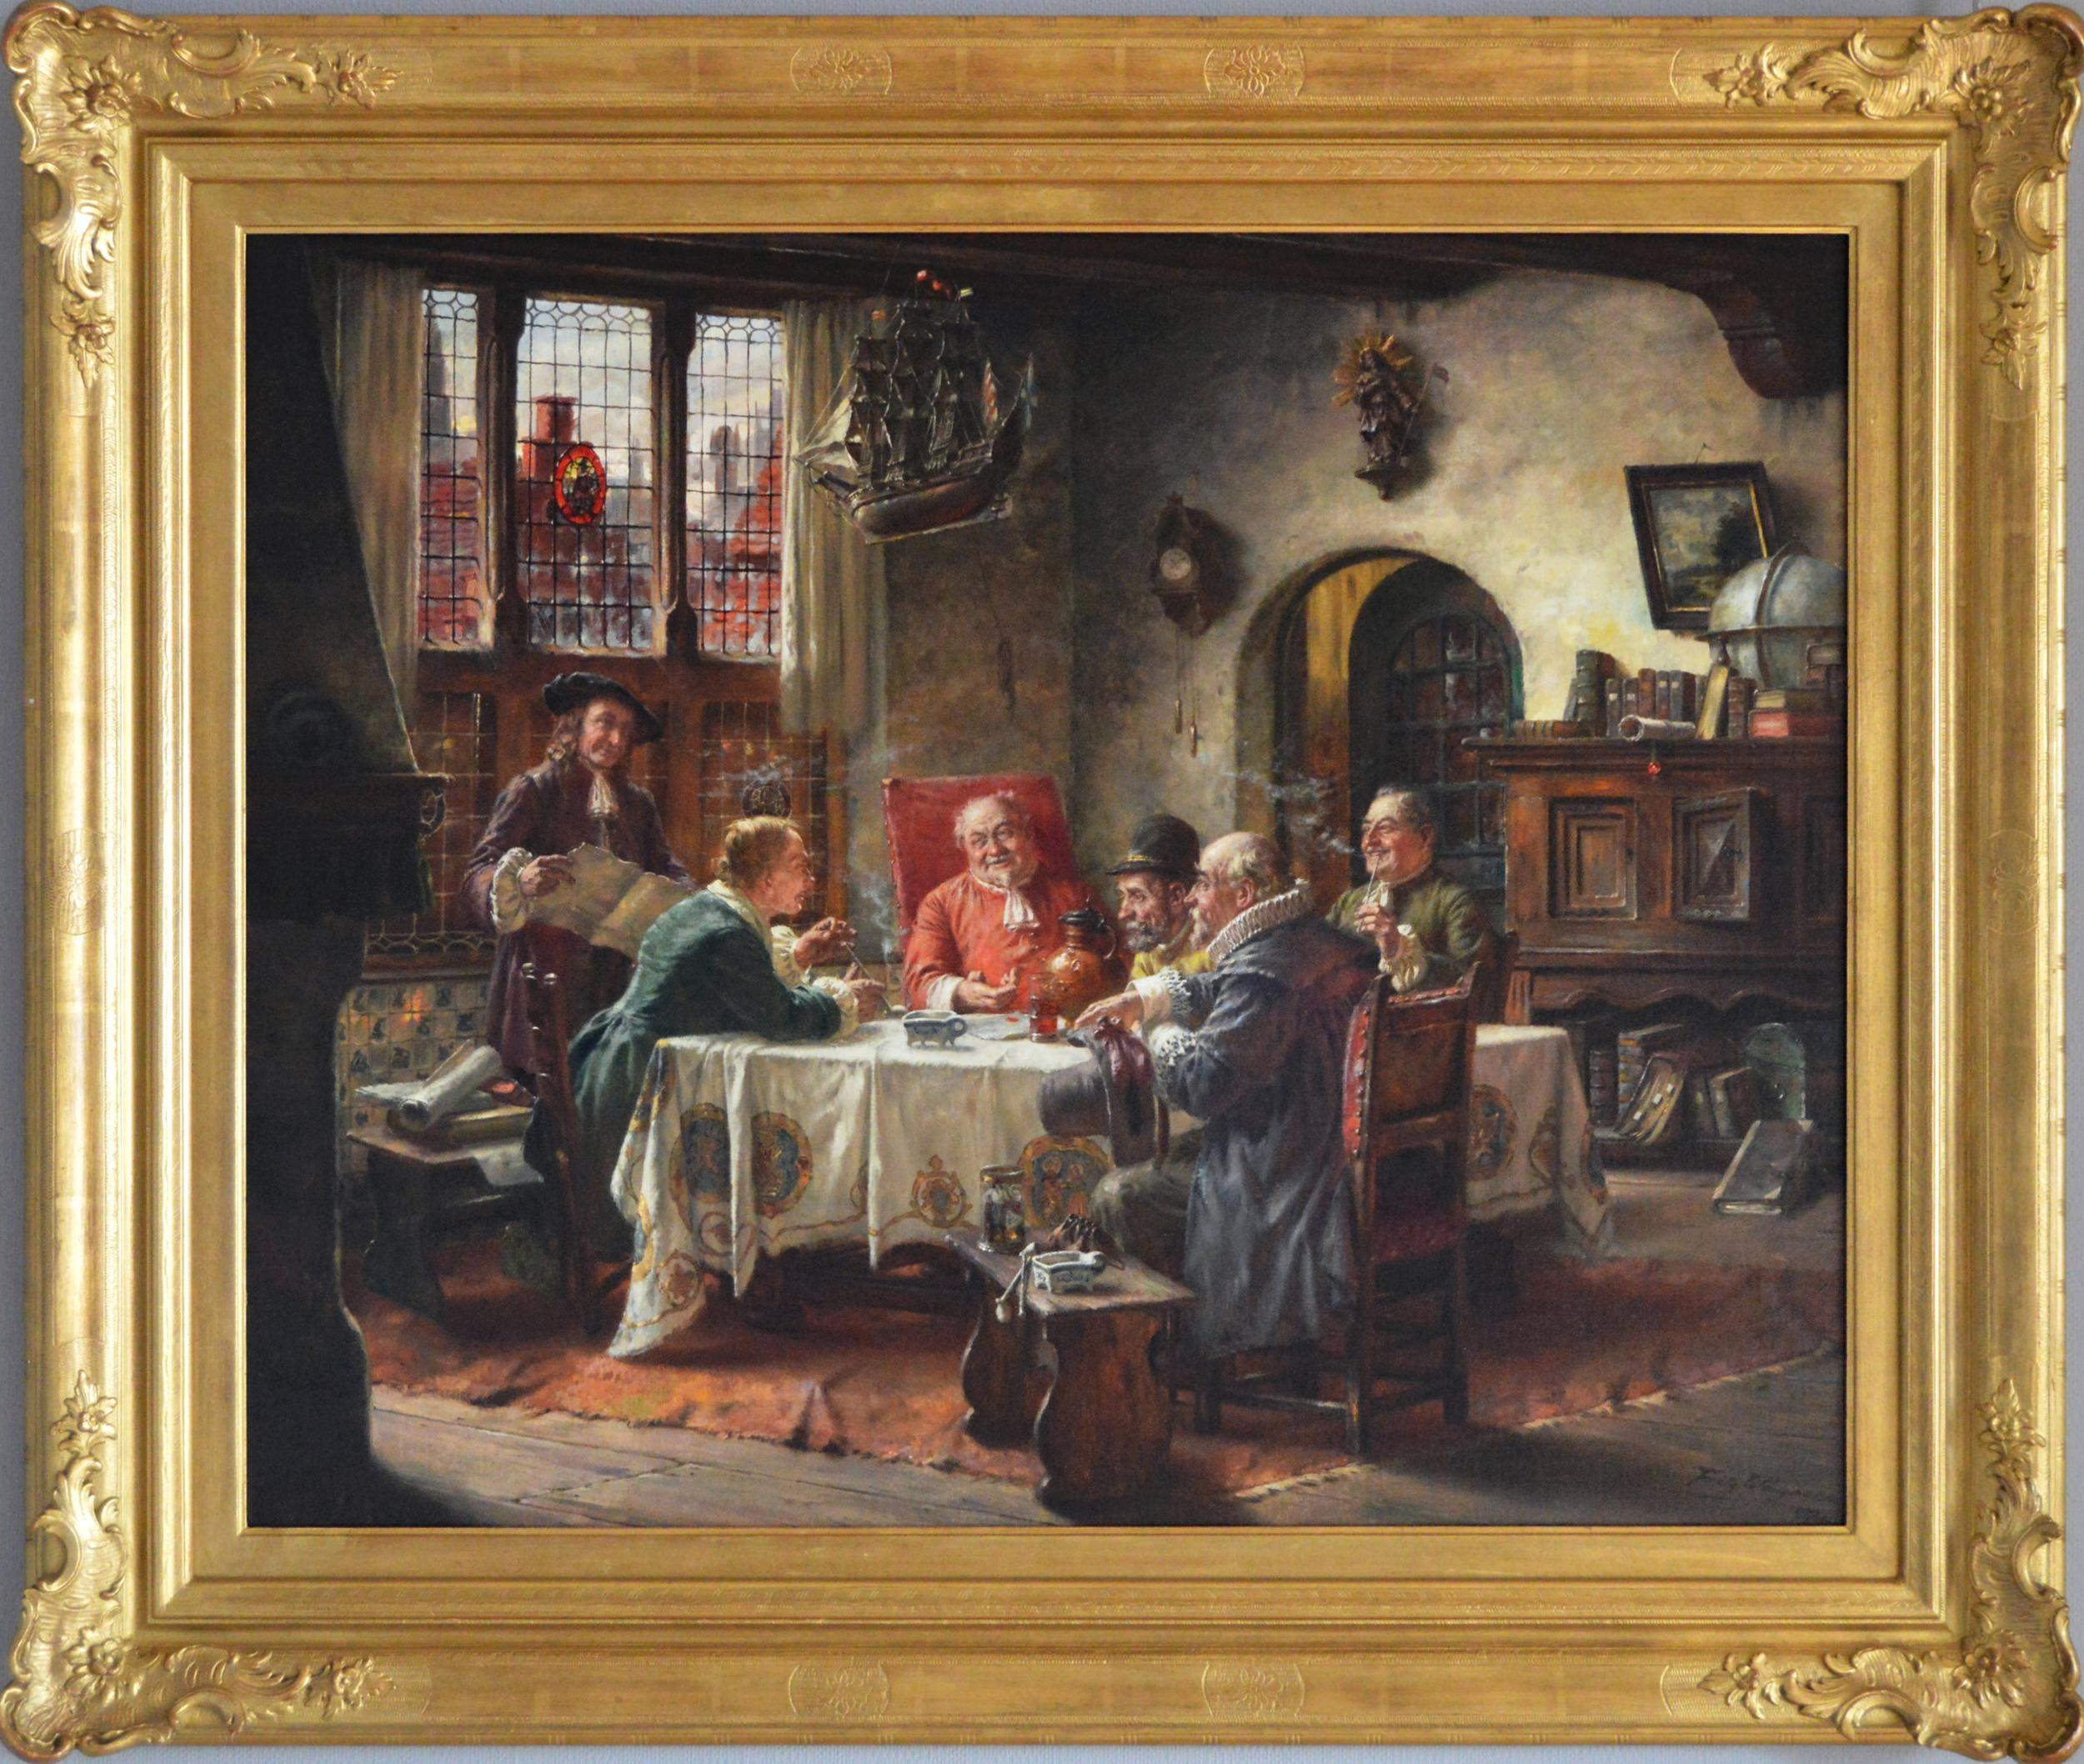 Genre historical oil painting of a merchants guild